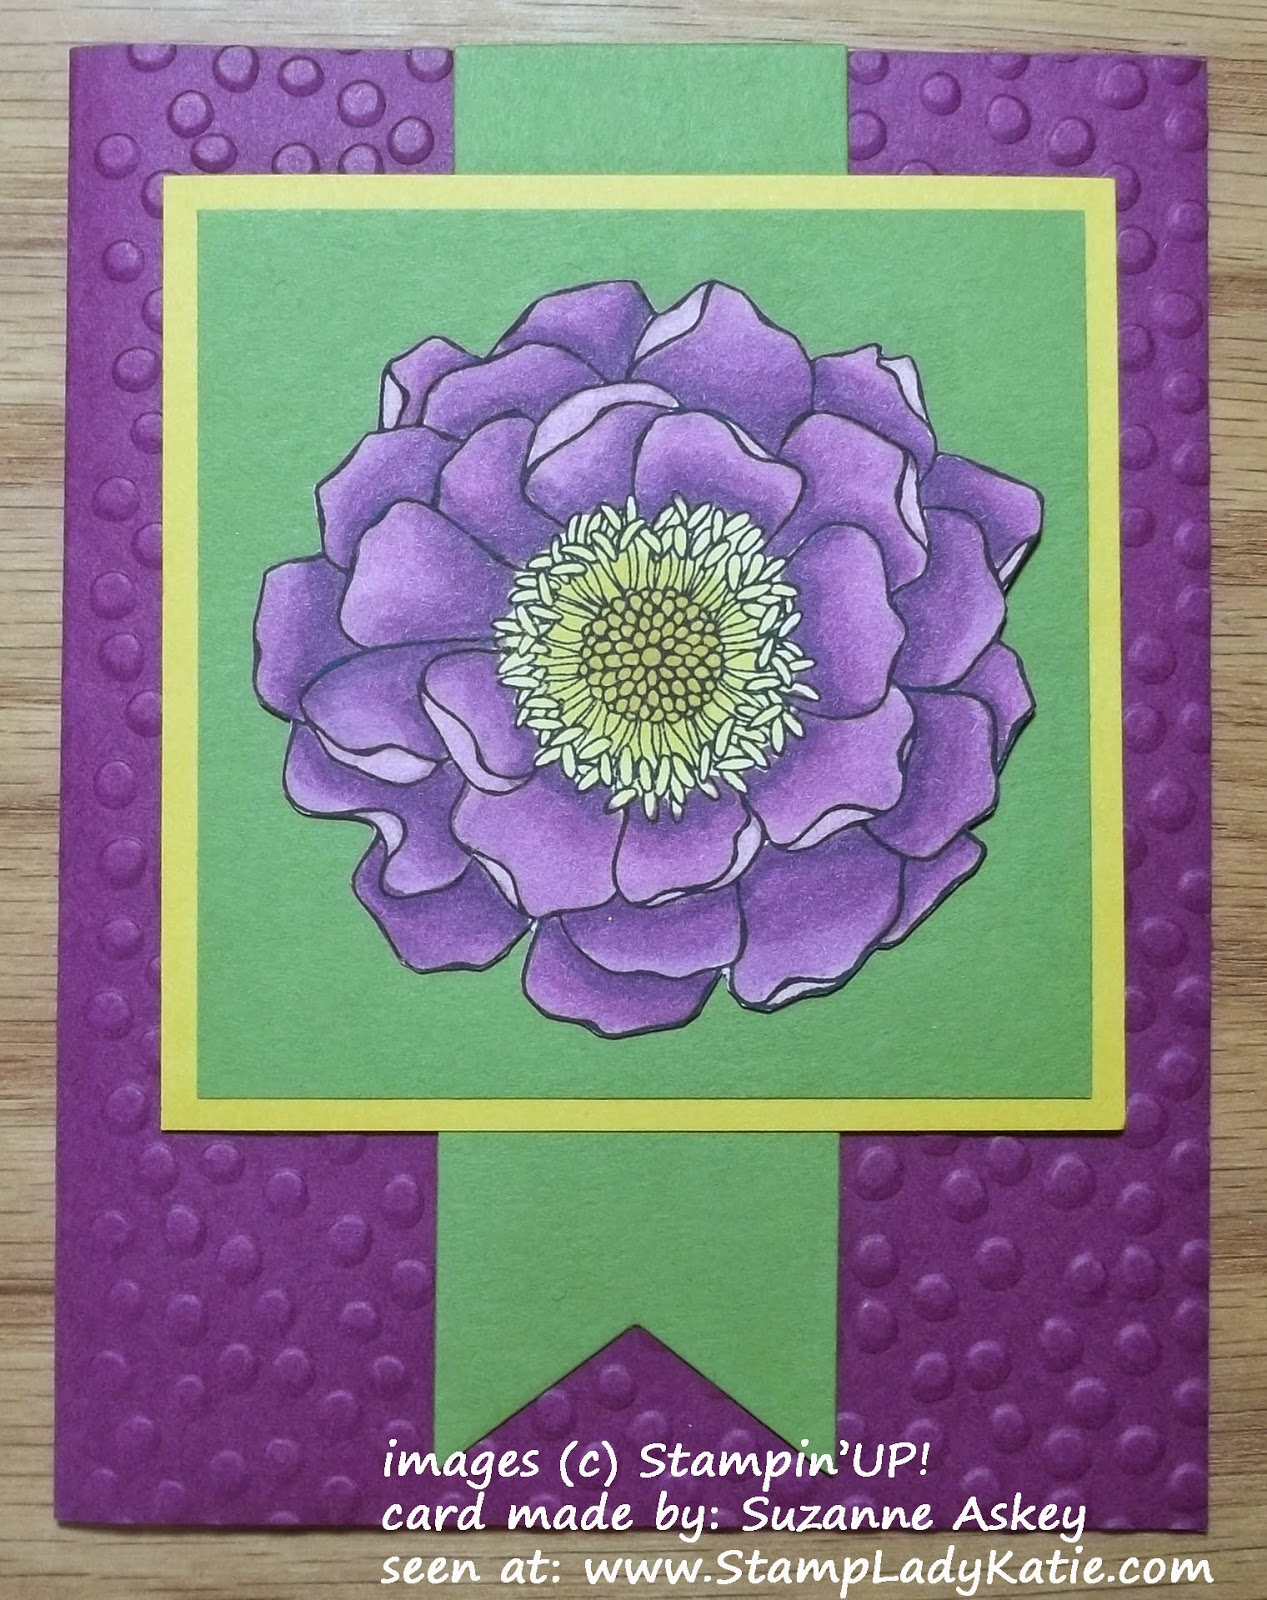 Card made with Stampin'UP!'s Blended Bloom stamp and colored with the new Blendability alcohol markers.